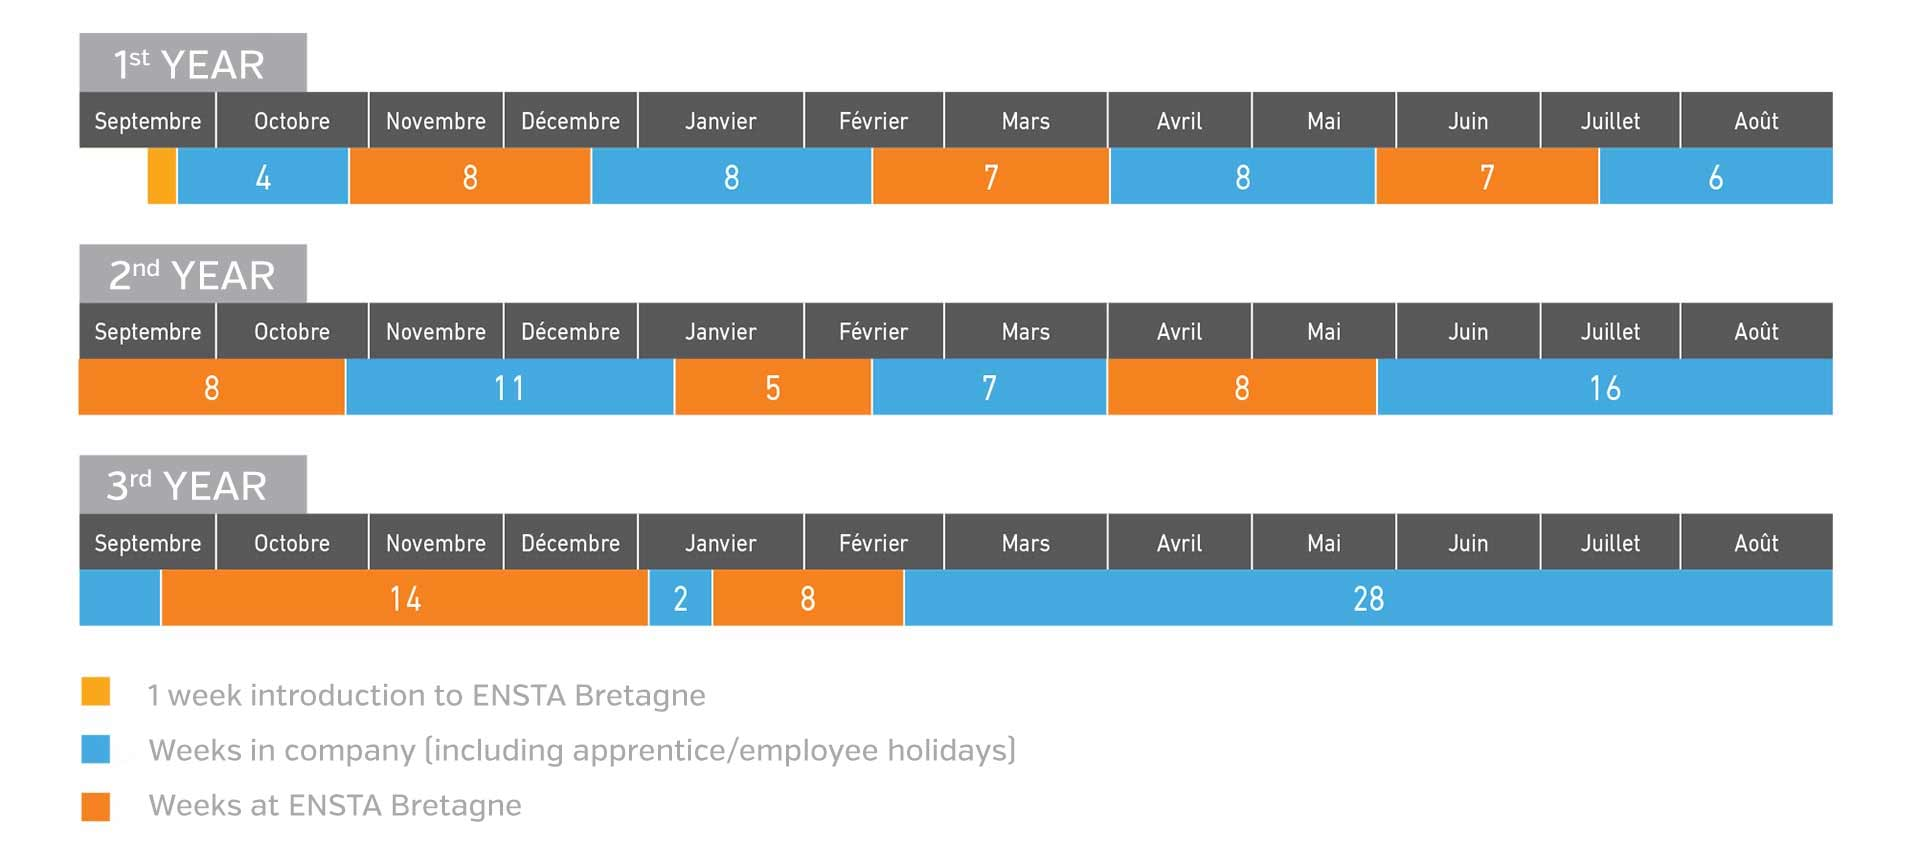 ENSTA Bretagne : Co-operative (apprentice) learning program and calendar